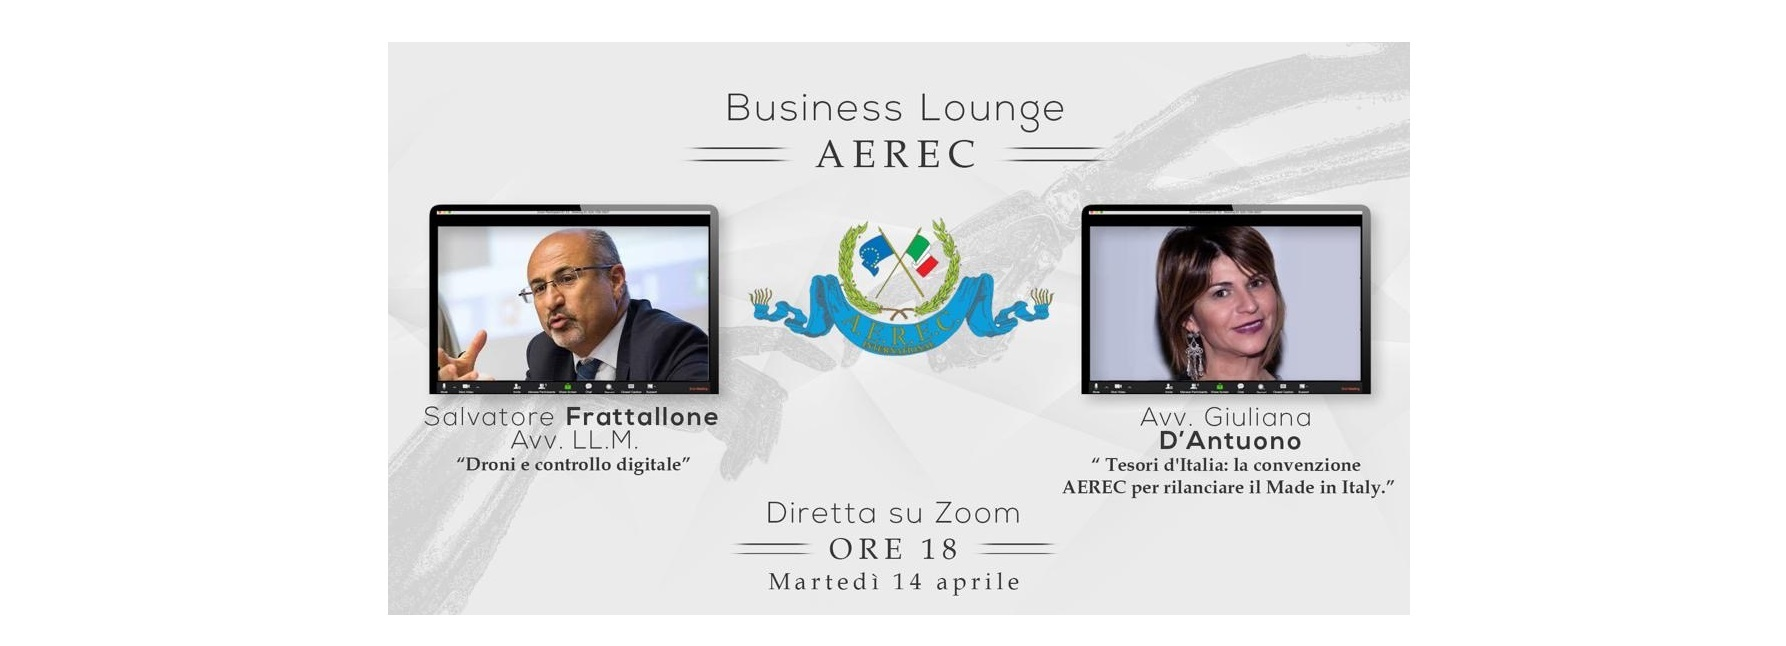 PRIVACY - Business Lounge Aerec 'Droni e controllo digitale'